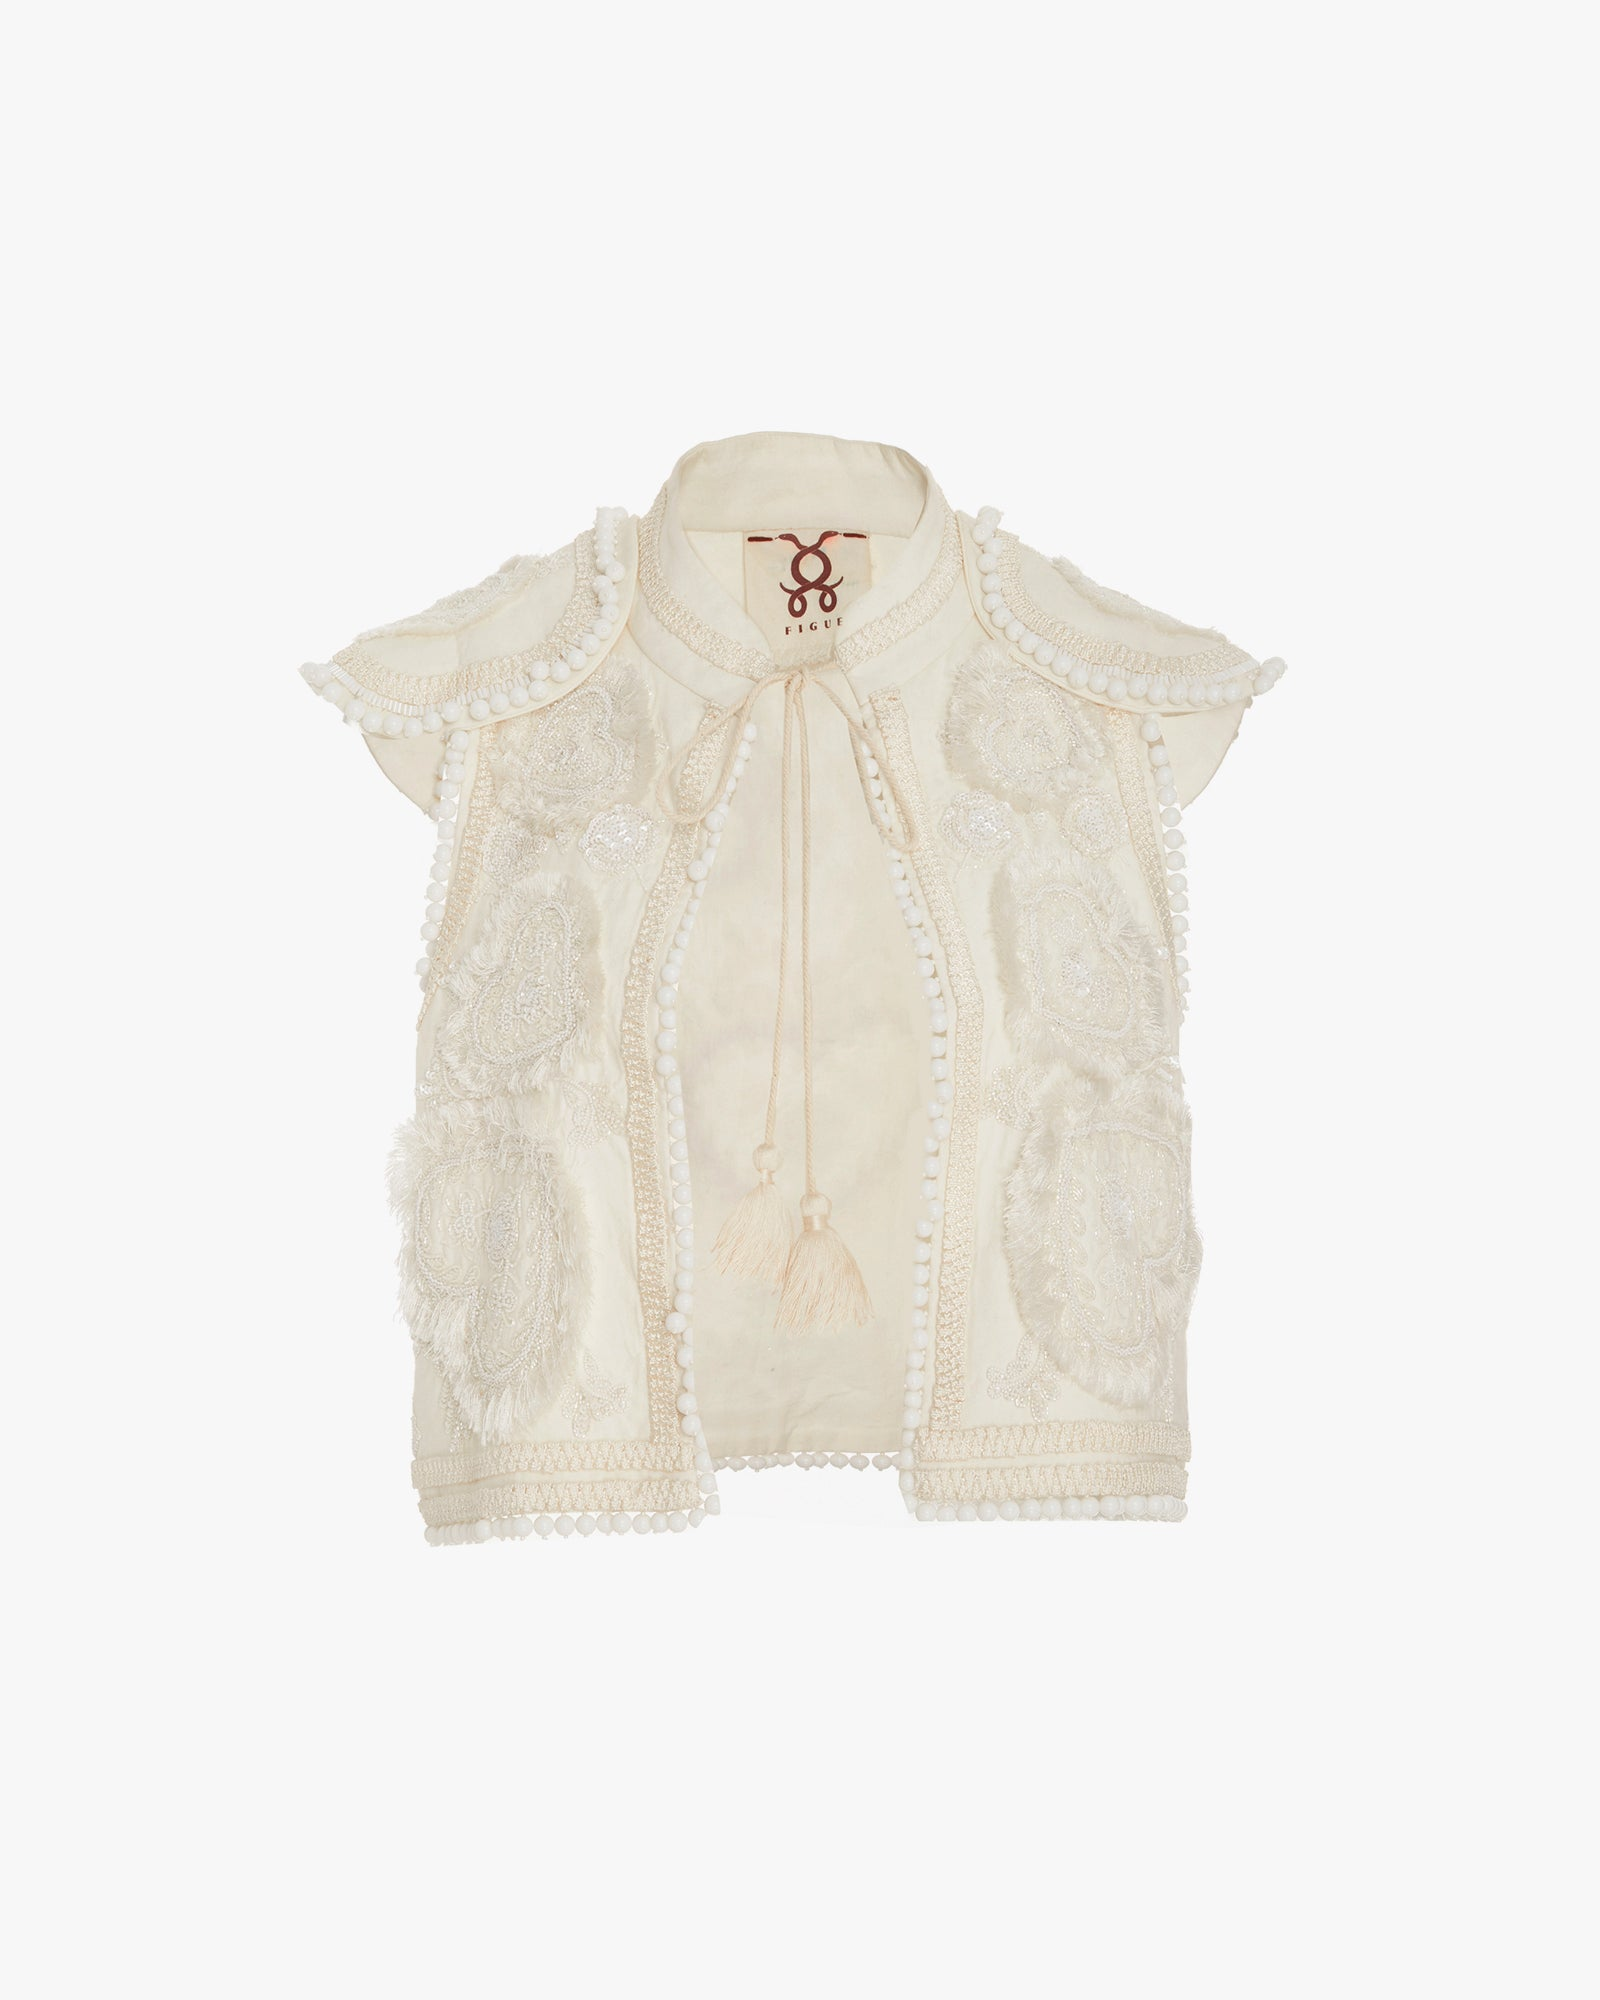 For Sale Buy Authentic Online For Sale 2018 Manolete vest - White Figue sljsAgGh0